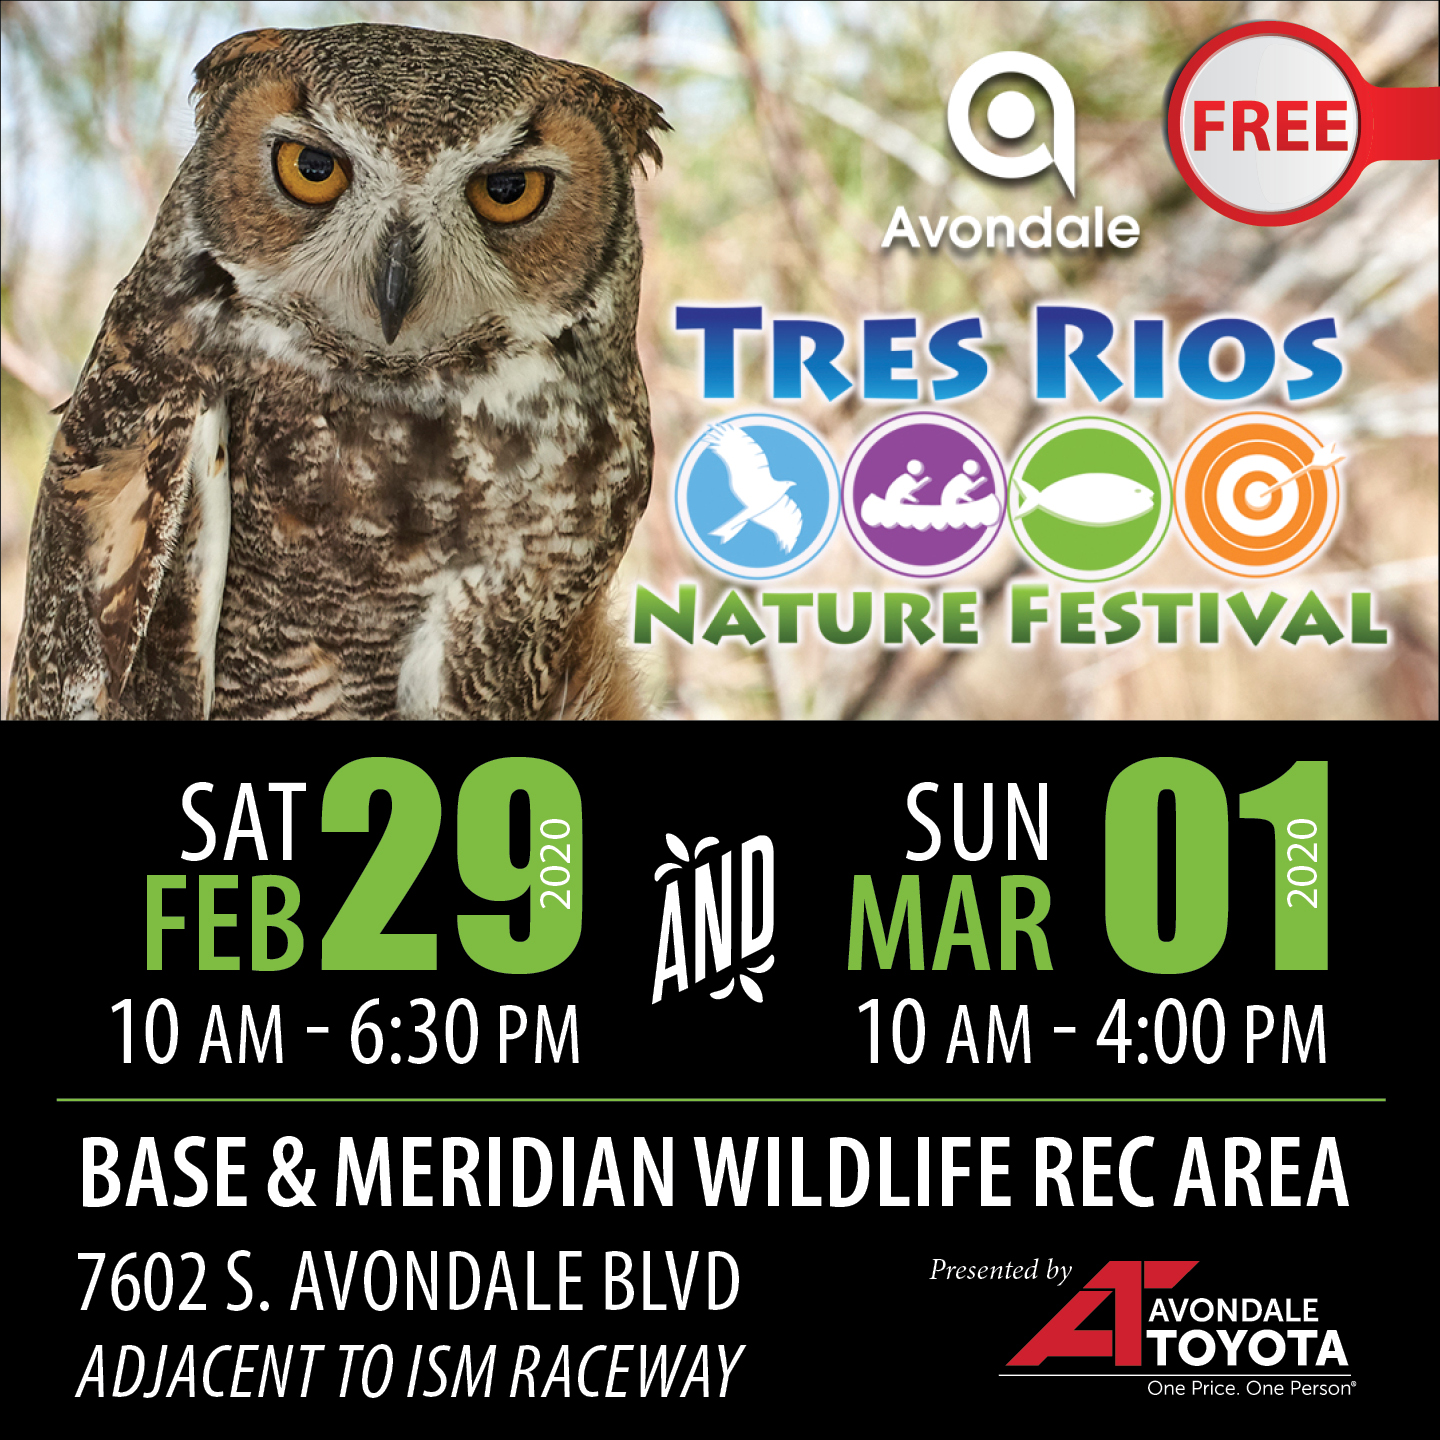 2020 Tres Rios Nature Festival takes place Feb 29-Mar 1